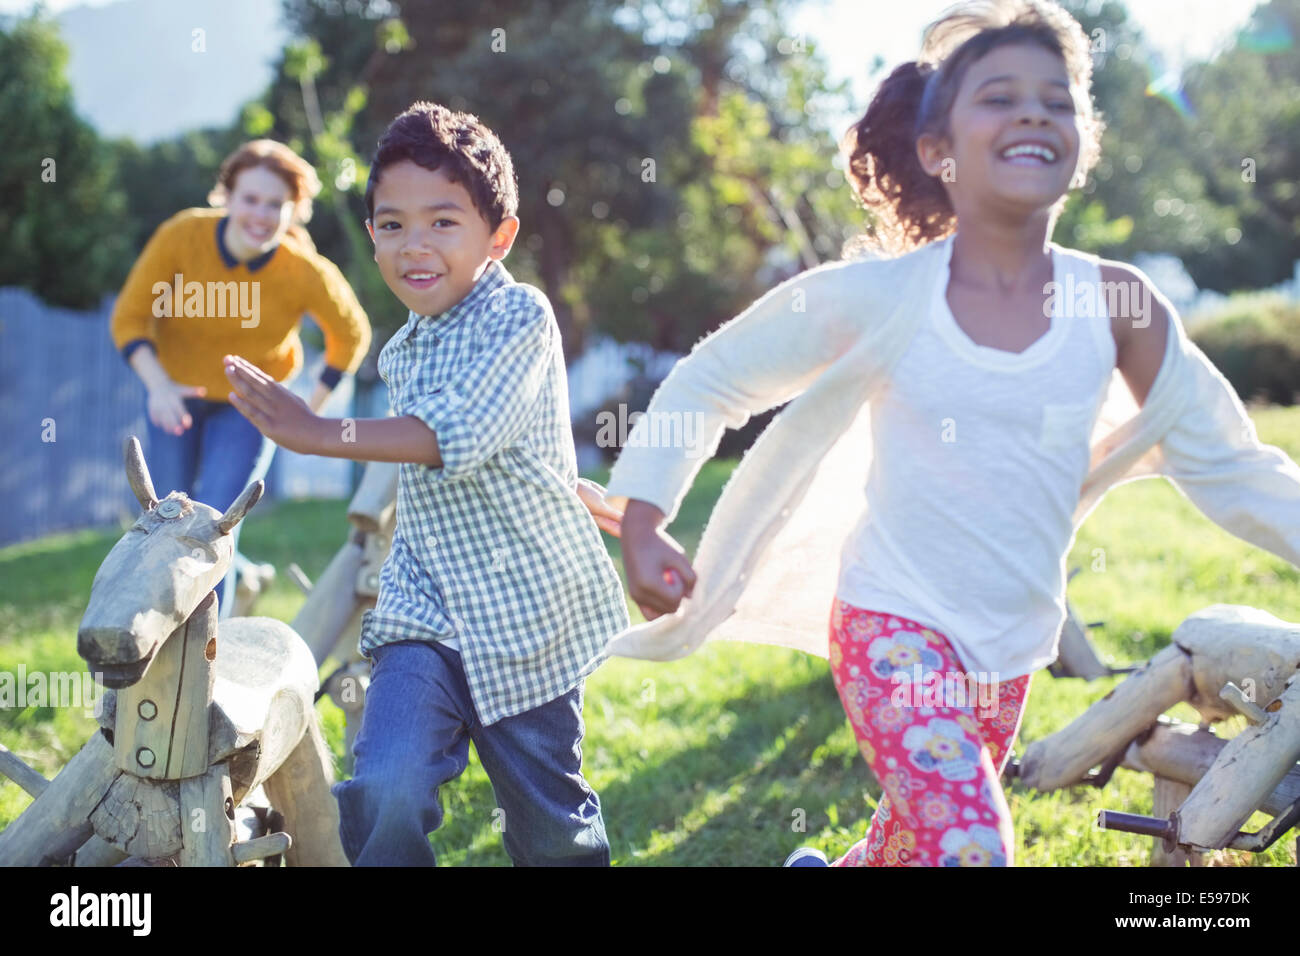 Children running in field - Stock Image